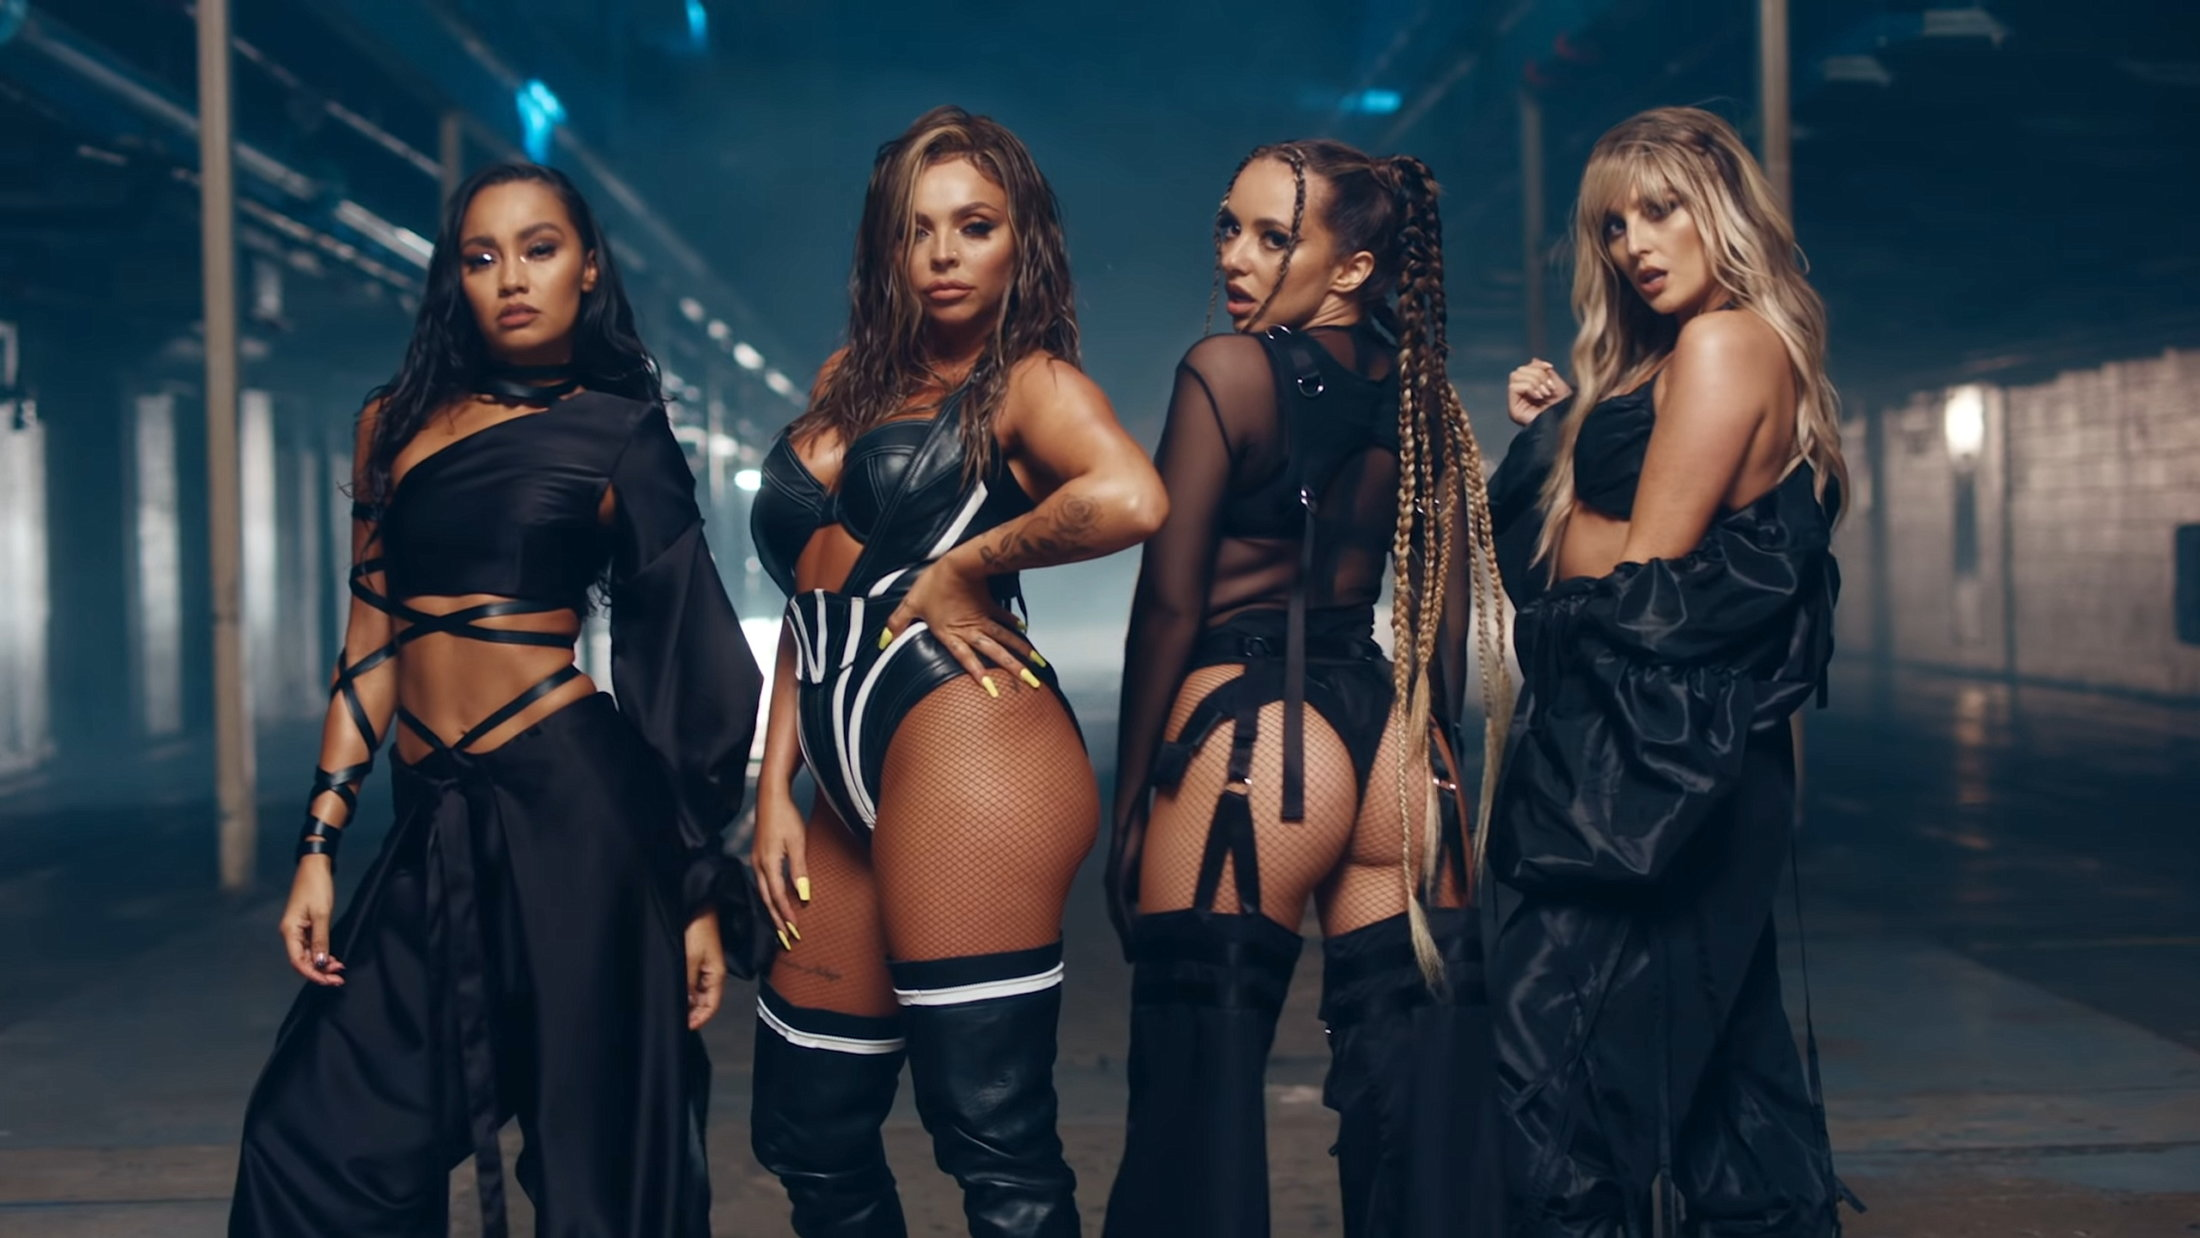 Little Mix - Sweet Melody (Official Video) 1-27 Screenshot